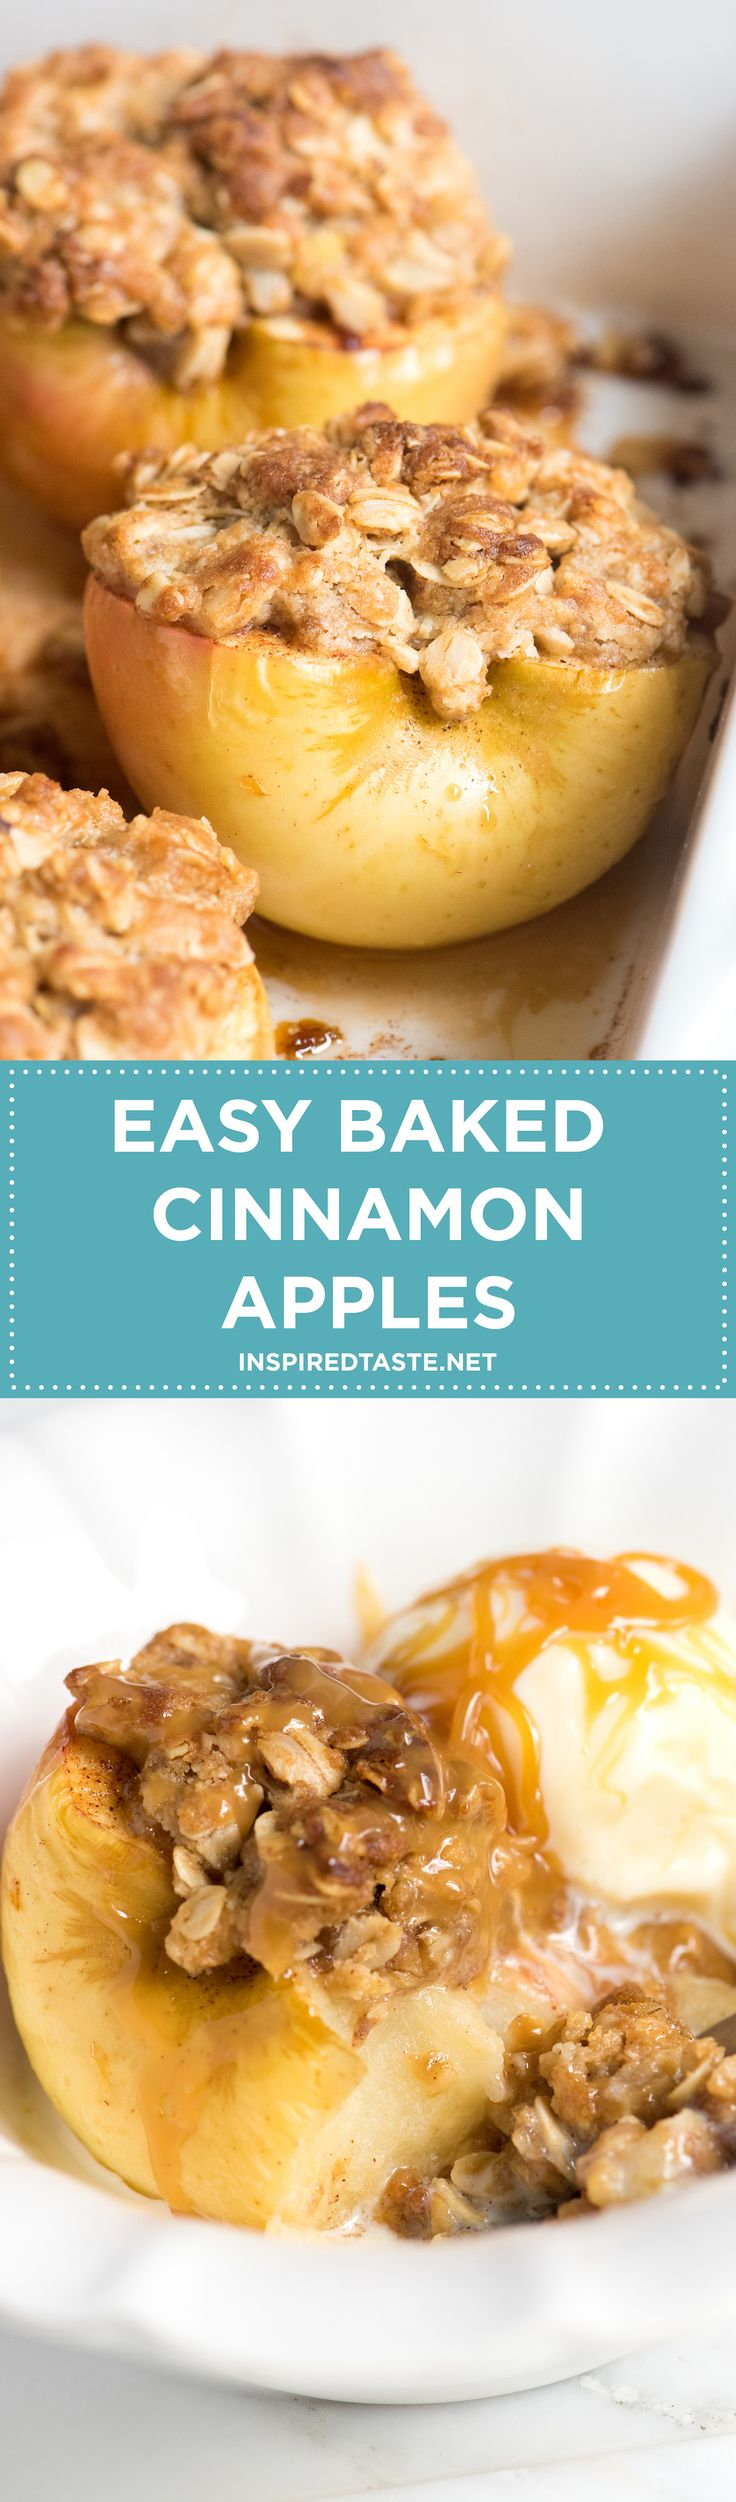 Easy Cinnamon Baked Apples on inspiredtaste.net -- So simple and perfect for the holidays!